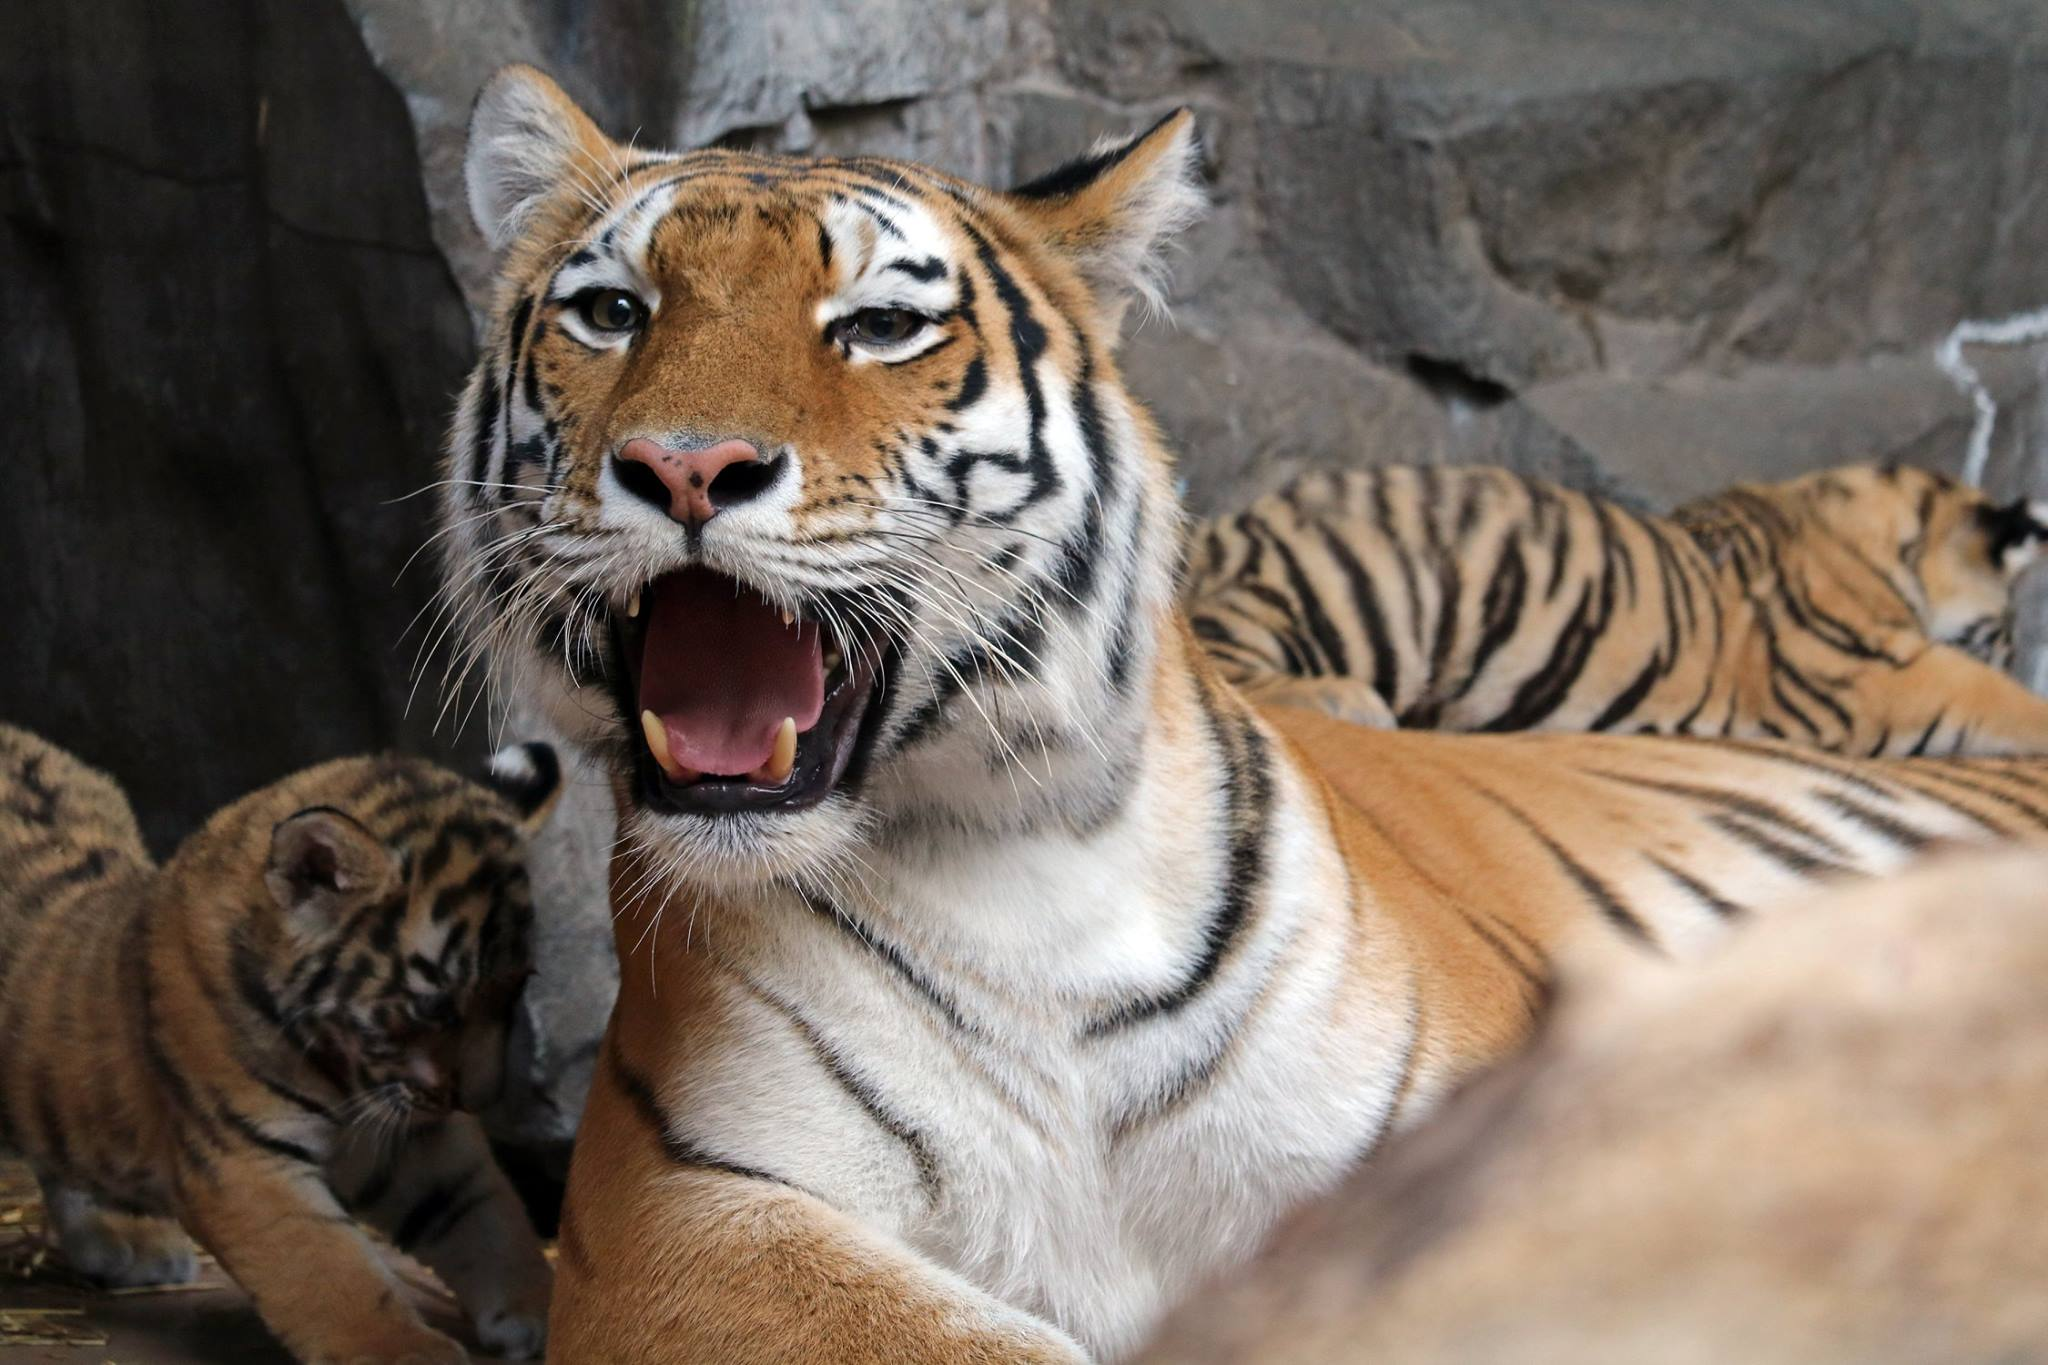 New Tiger Breeding Center, Genome Resource Bank Aim to Save Wild Tiger Populations